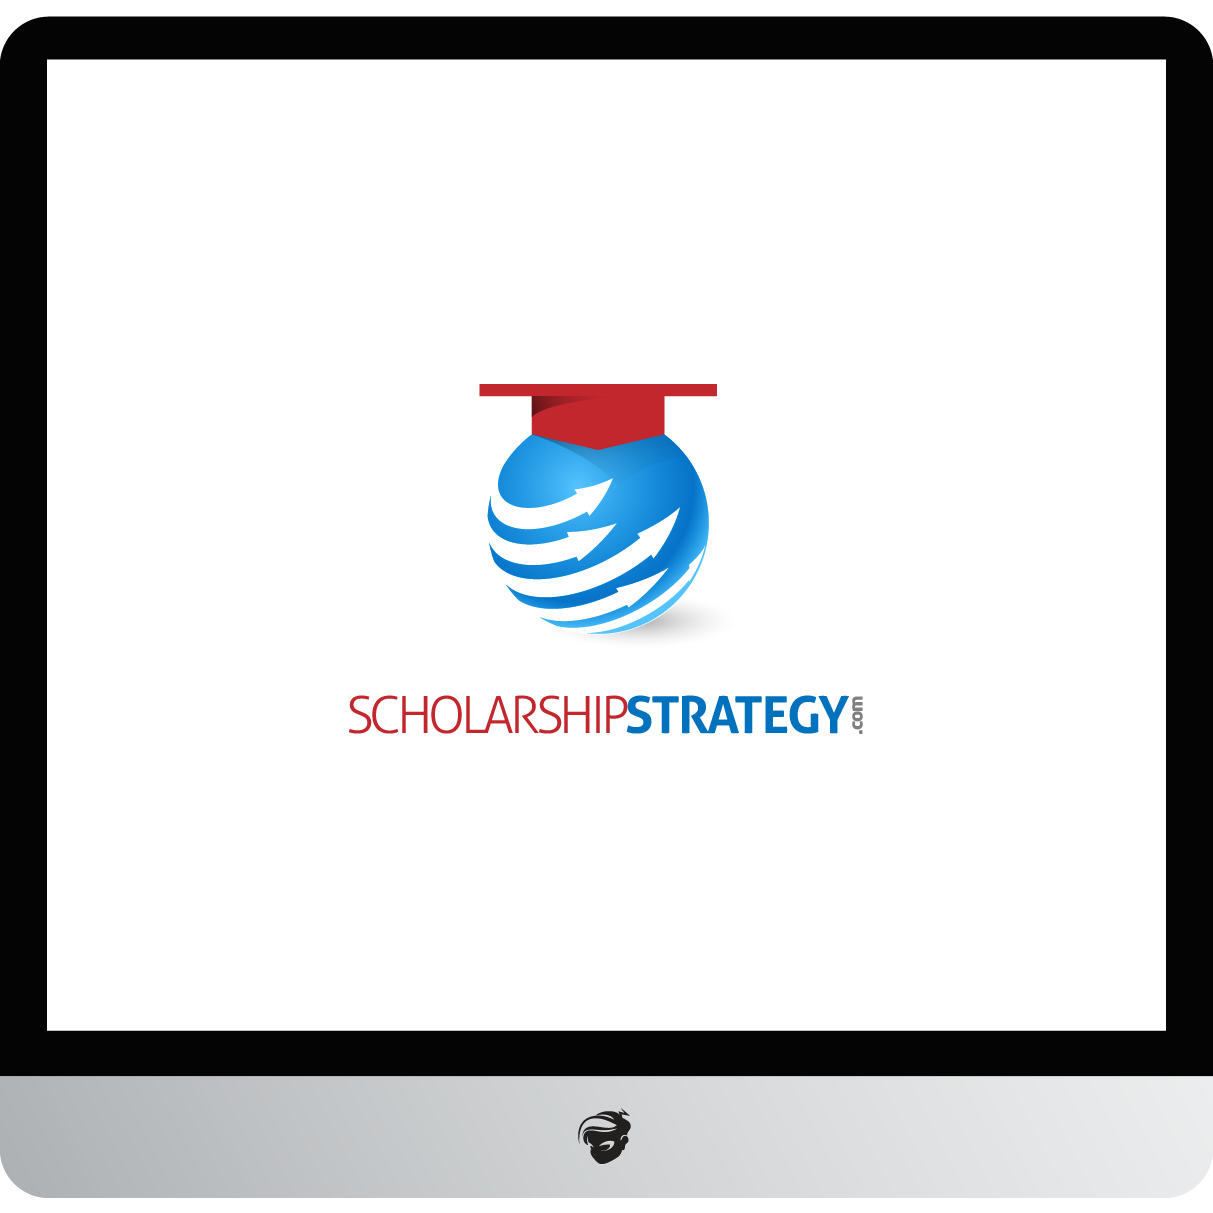 Logo Design by zesthar - Entry No. 34 in the Logo Design Contest Captivating Logo Design for Scholarshipstrategy.com.